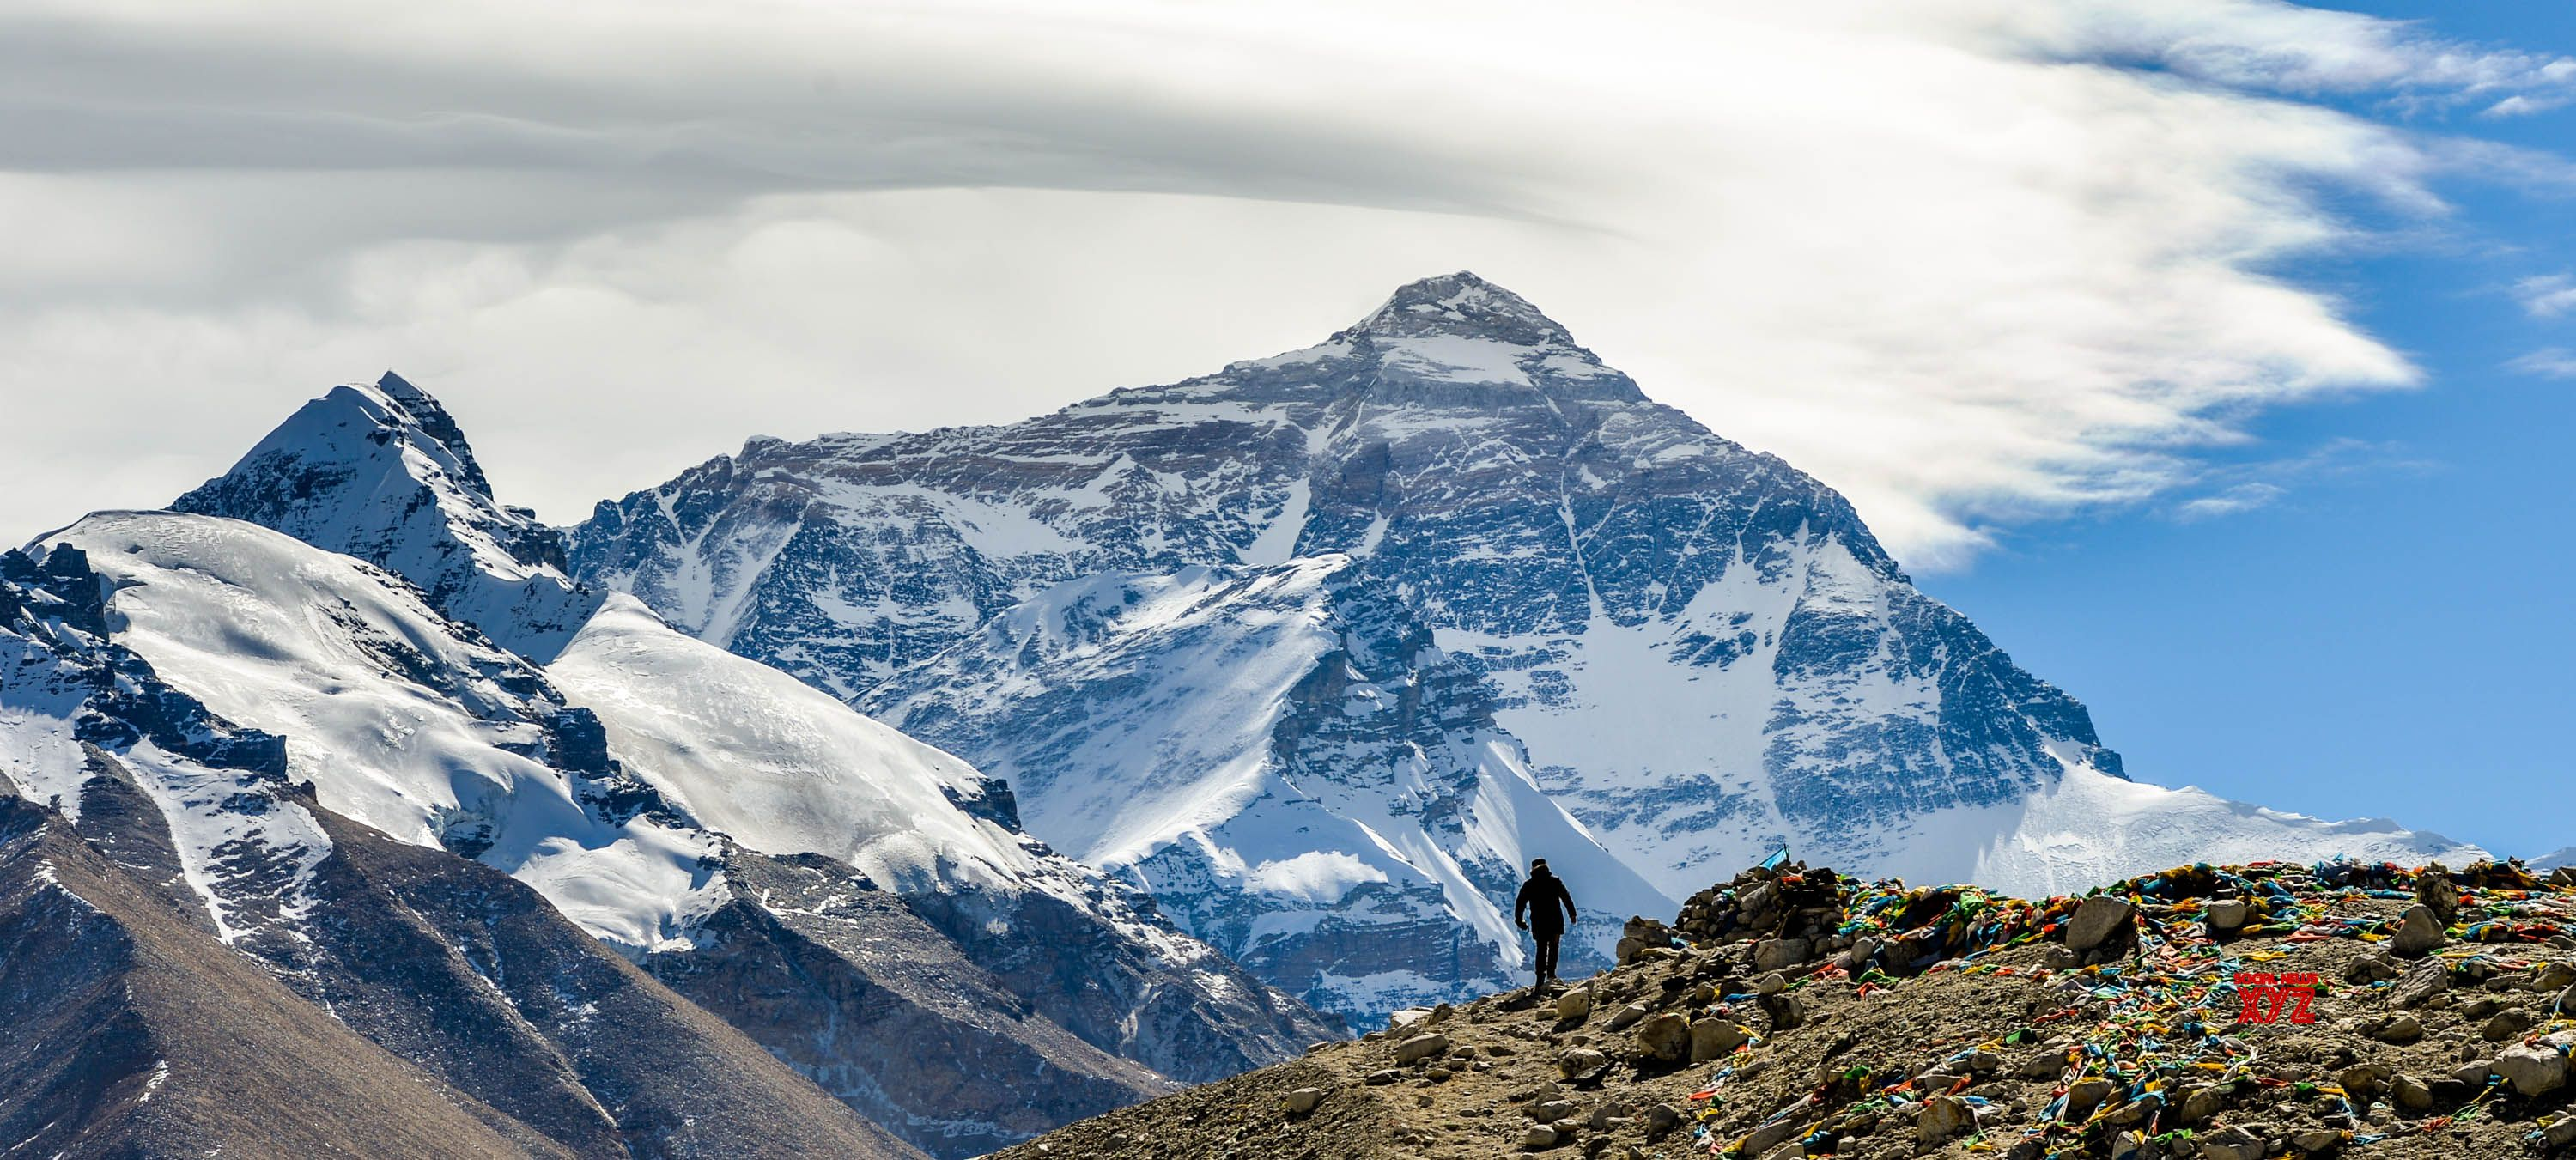 World's highest operating weather stations installed on Everest